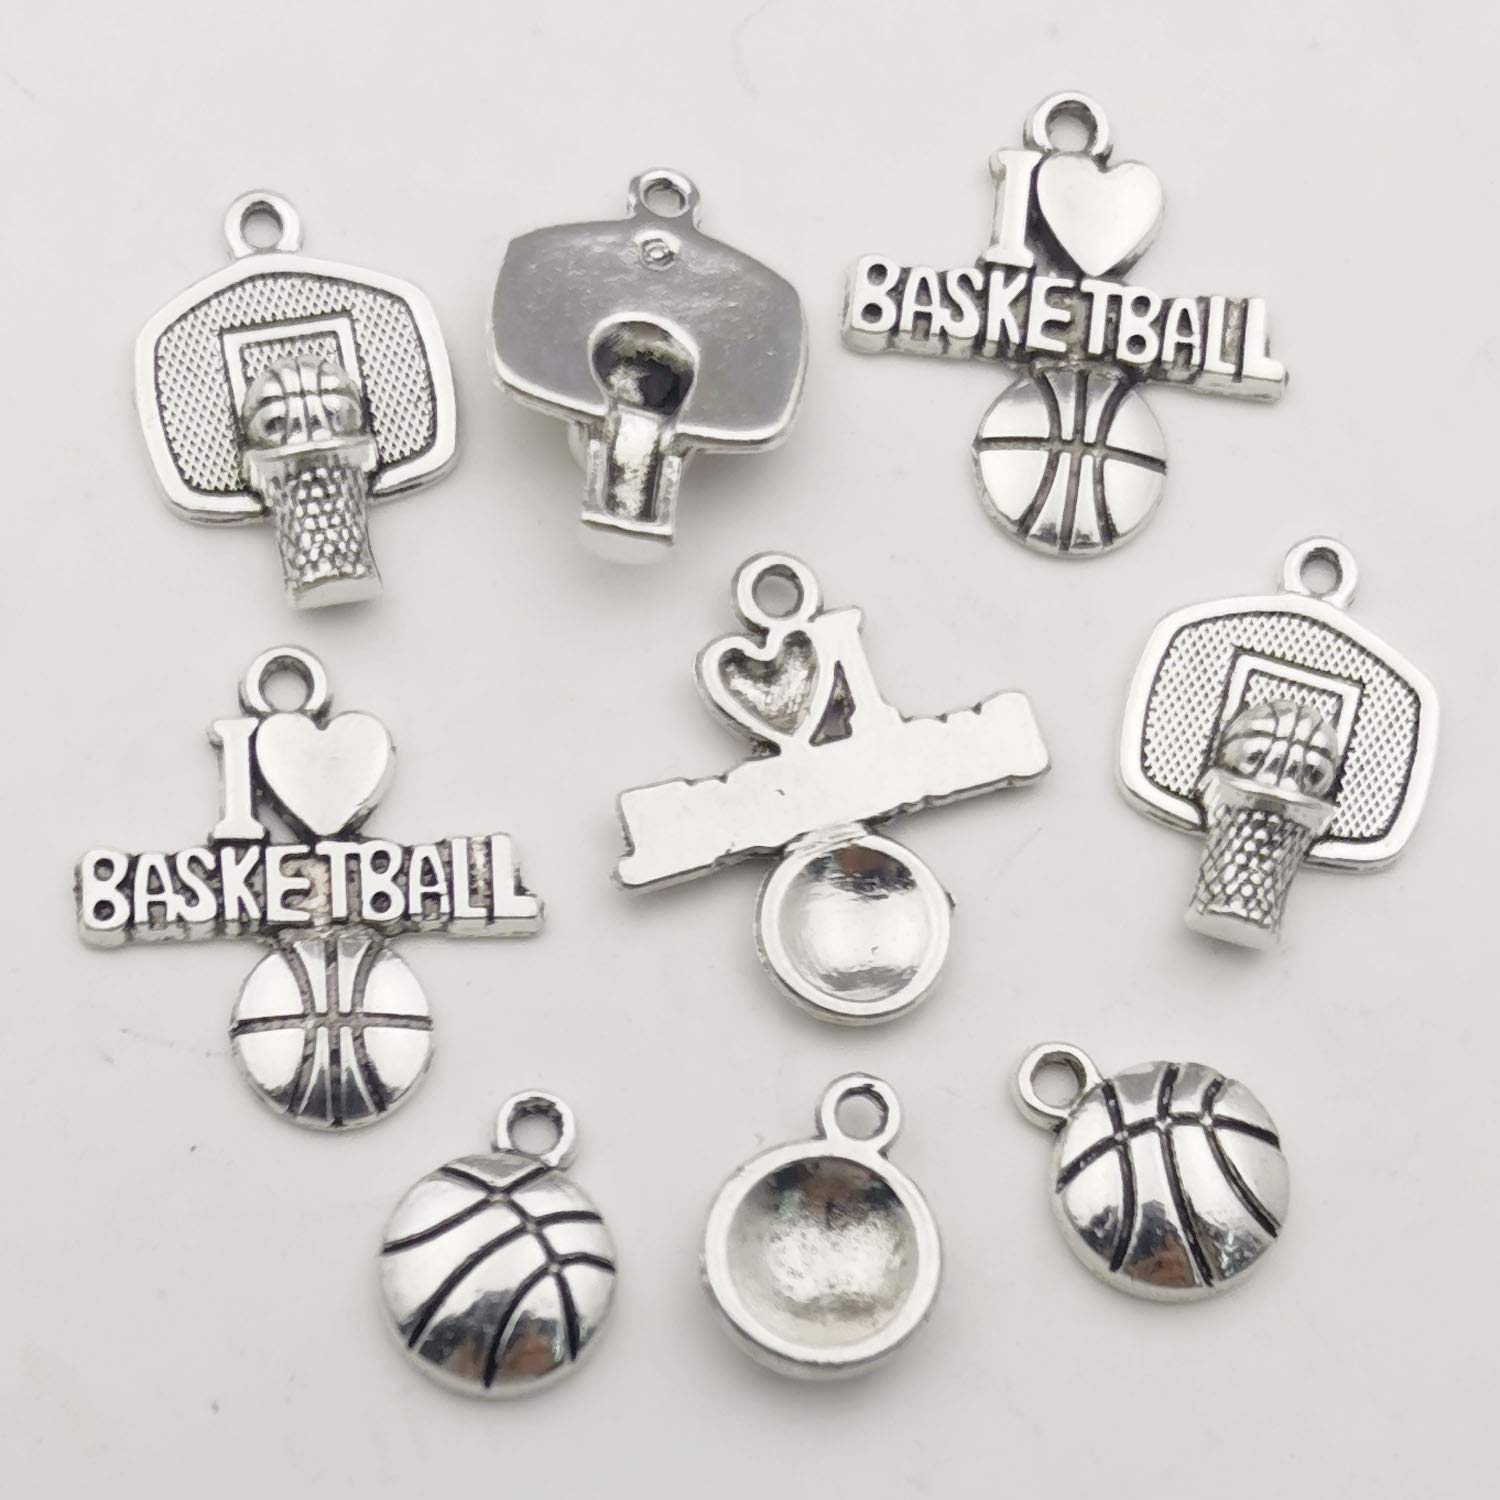 Ball Sports Charms-75pcs Alloy Ball Games Sports Basketball Charms for Jewelry Making Crafting DIY Necklace Earrings Bracelet Accessaries M324